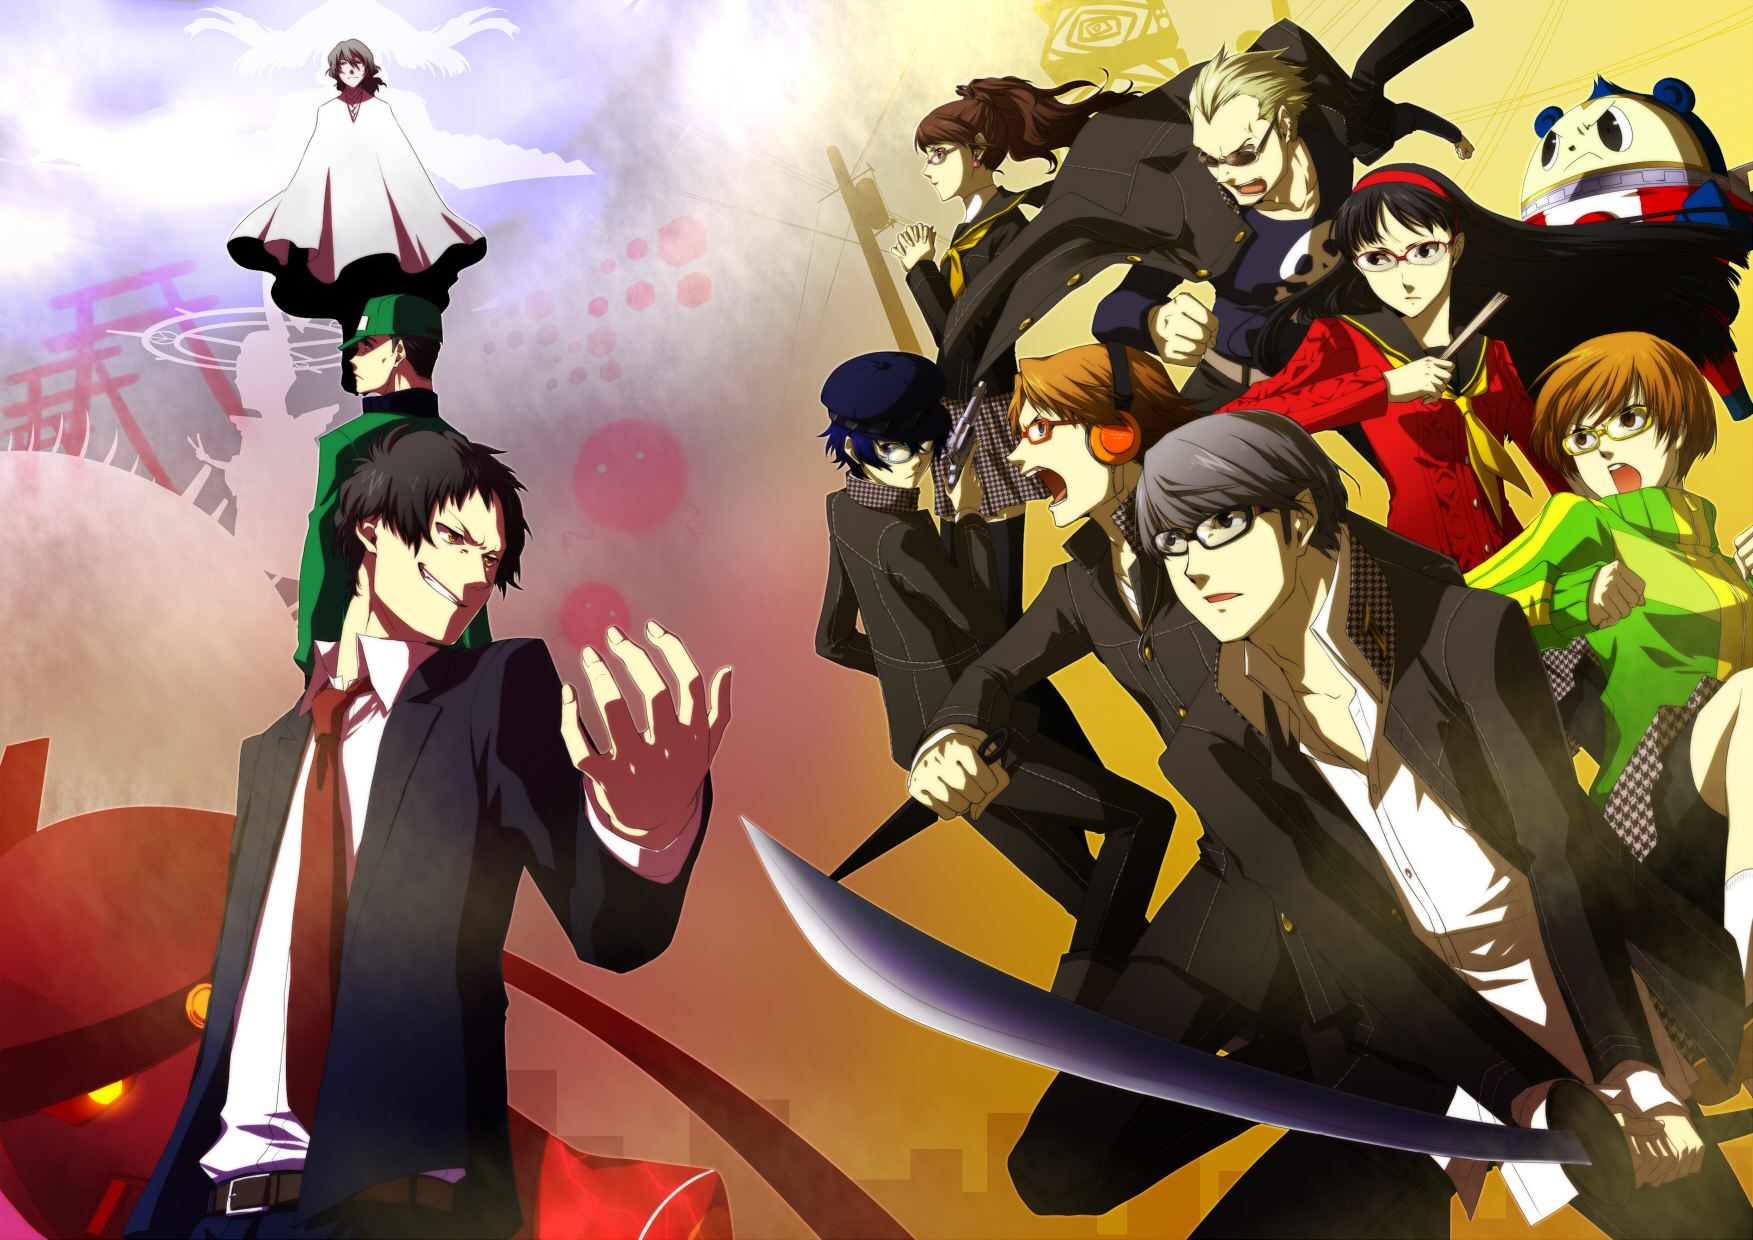 persona Persona, also known as shin megami tensei: persona, is a video game franchise developed and primarily published by atlus focusing around a series of role-playing video games.